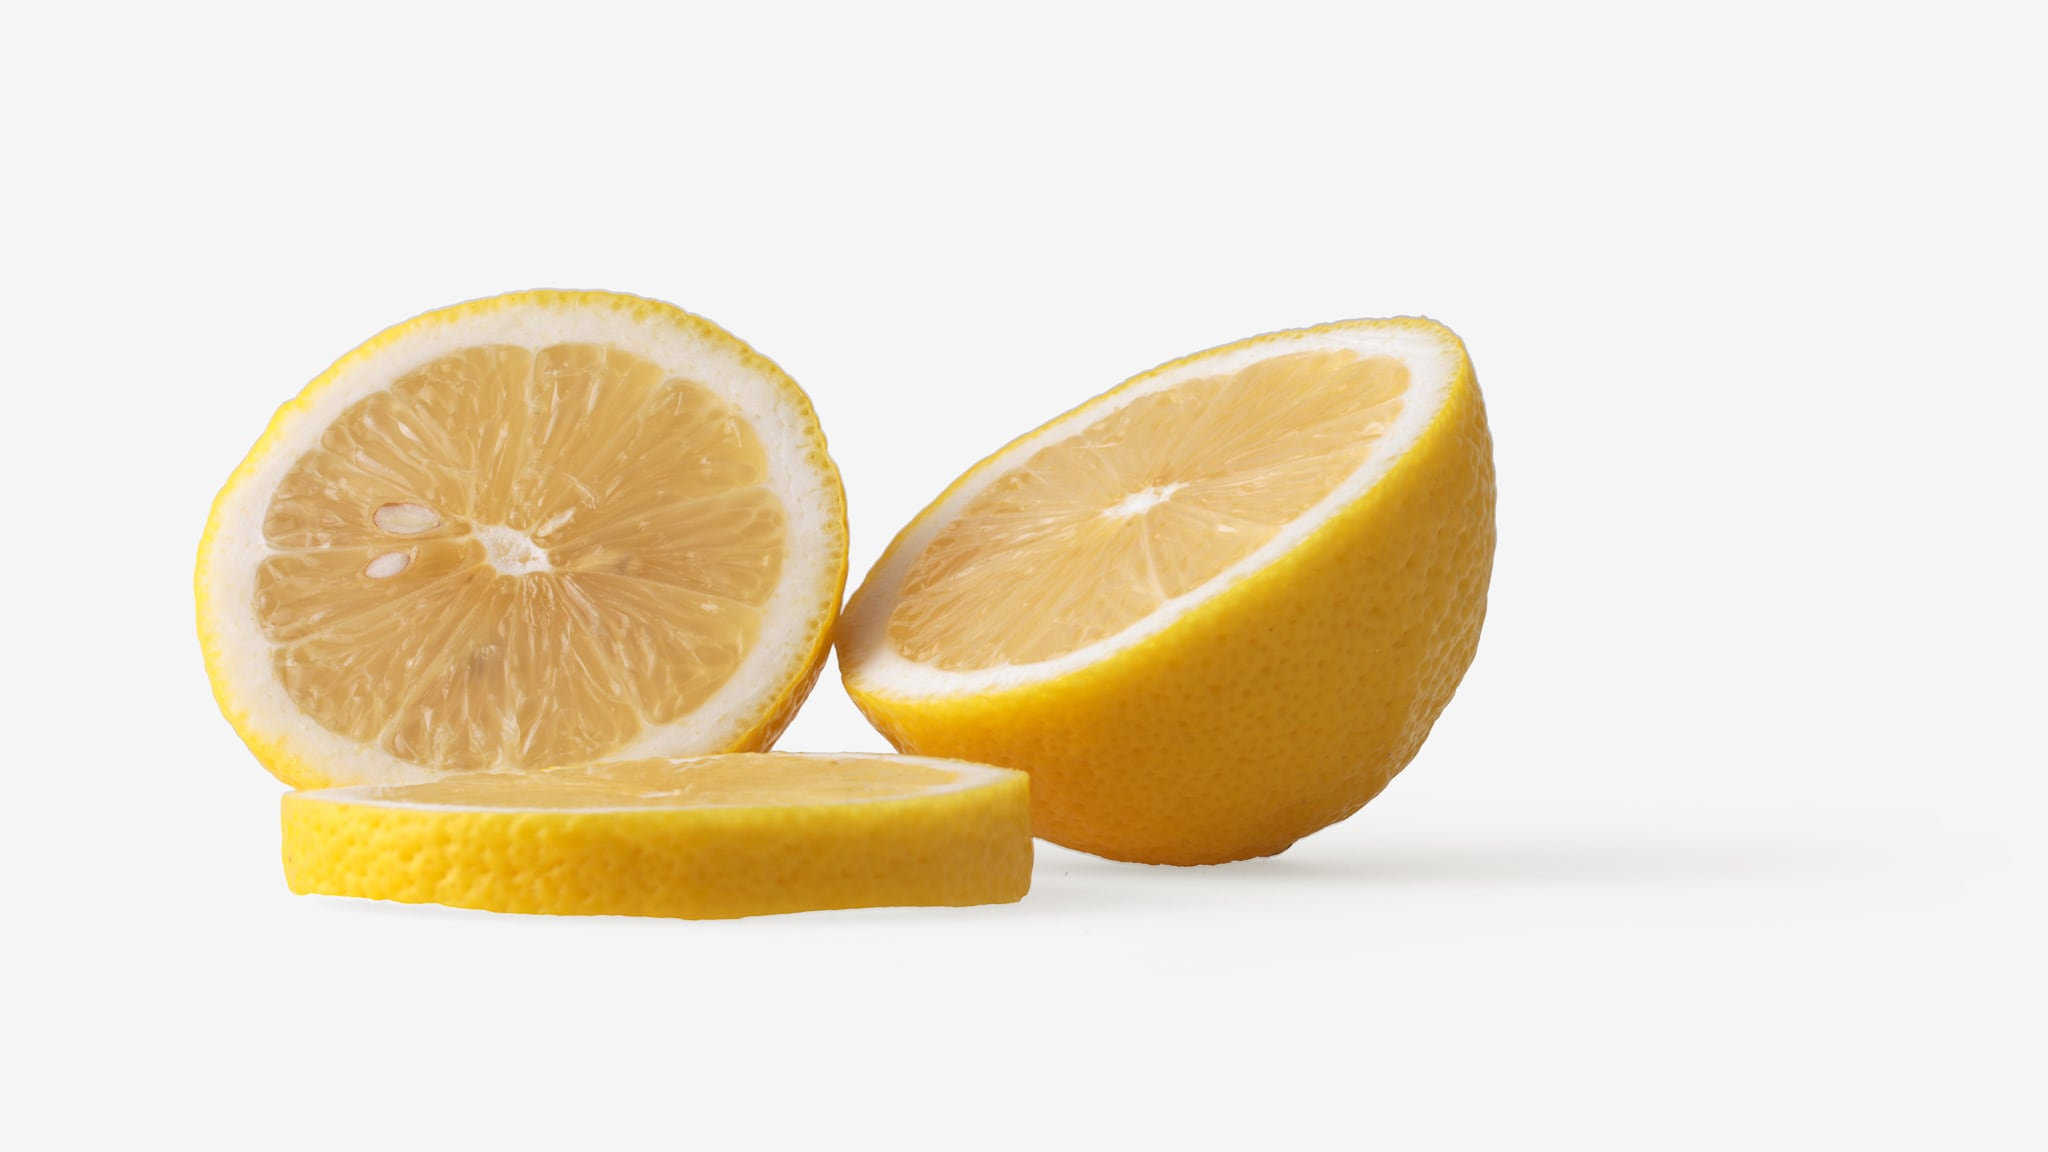 Lemon image with transparent background